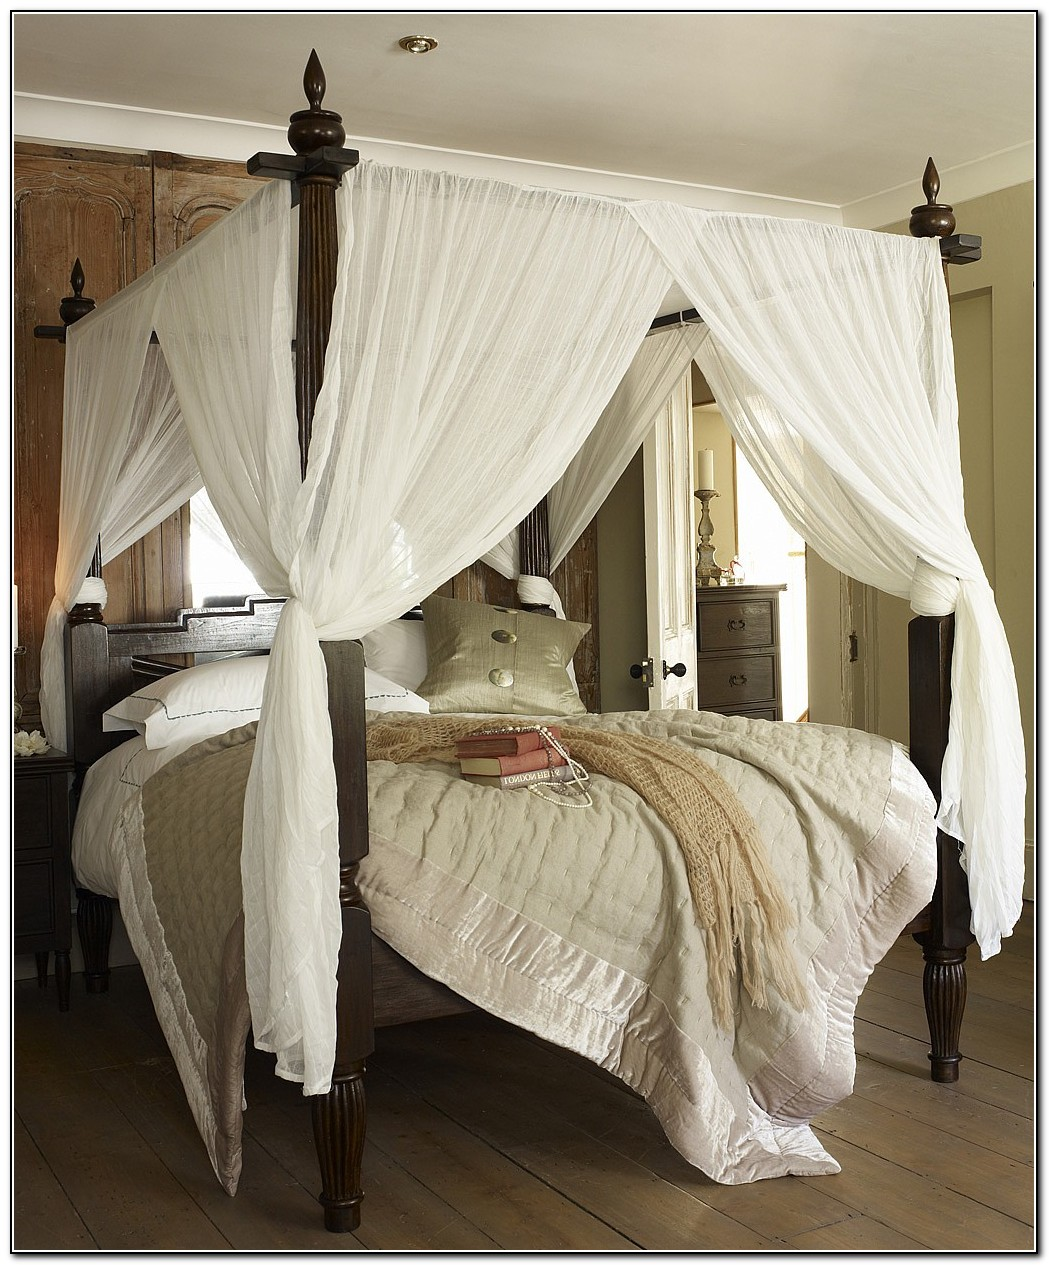 Canopy Bed Curtains Walmart | Canopy Bed Curtains | Canopy Beds with Drapes & Curtain: Twin Bed Canopy Curtains | Queen Canopy Bed With Curtains ...